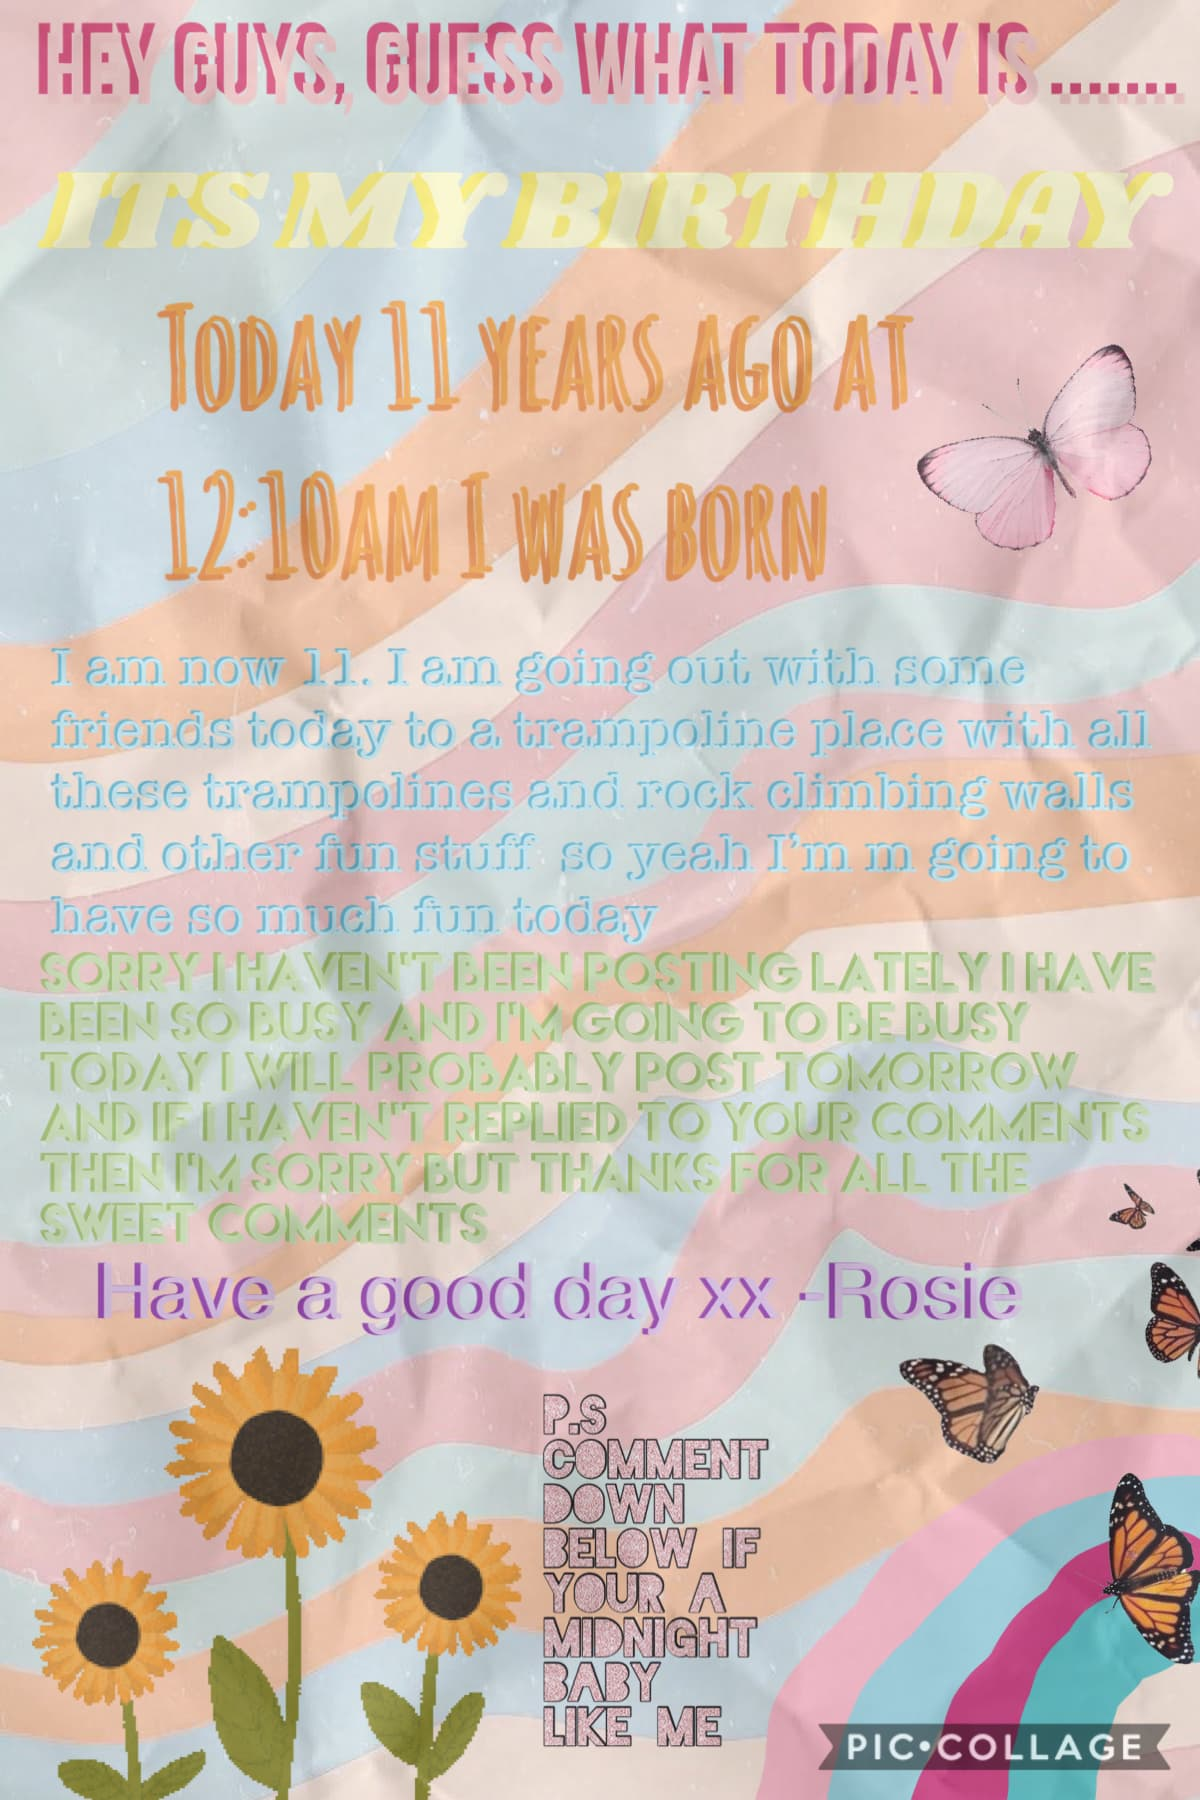 !!Hey guys!! I'm now 11 it's my bday  It was actually my bday yesterday I was meant to post this yesterday but I was so busy I forgot to post it